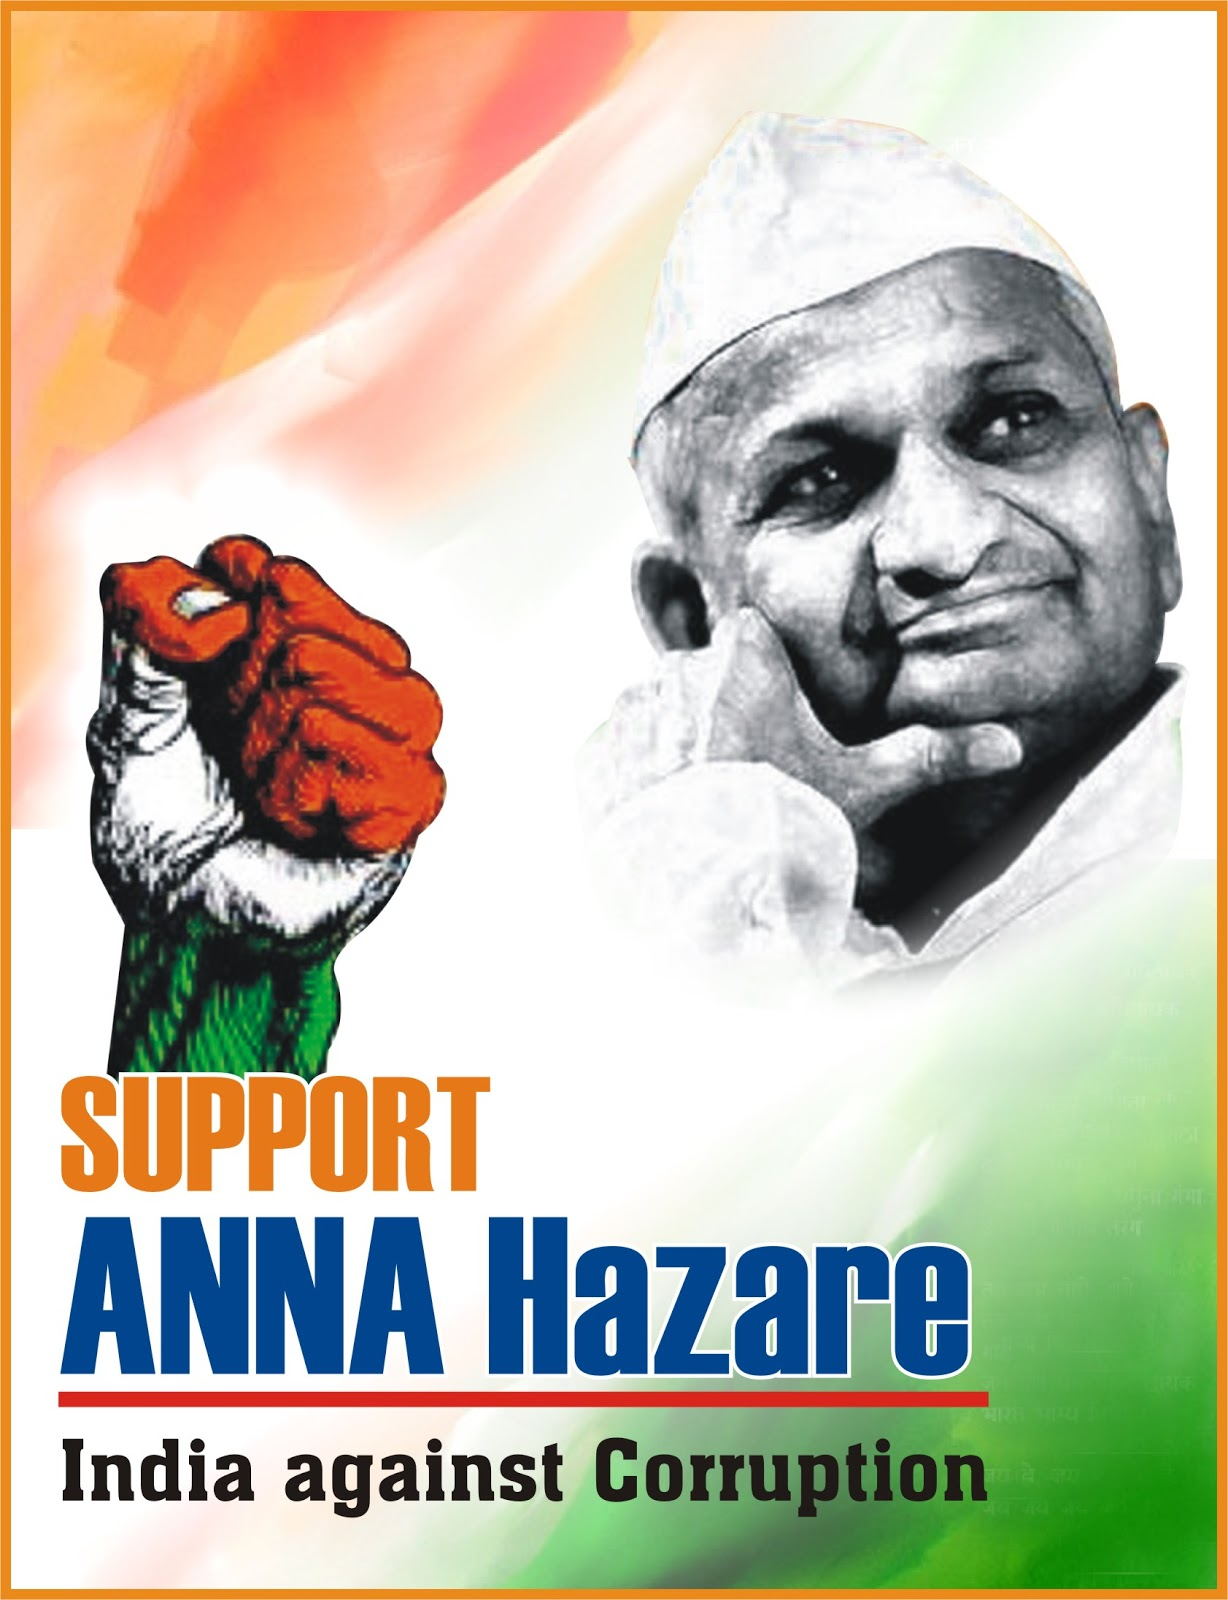 anna hazare fight against corruption Anna hazare, who led a massive protest and hunger strike against corruption in 2011, will return to ramlila maidan on friday to relaunch his 'satyagraha the delhi police on thursday gave the social activist permission to start a protest campaign at ramlila maidan here from friday stating that all.